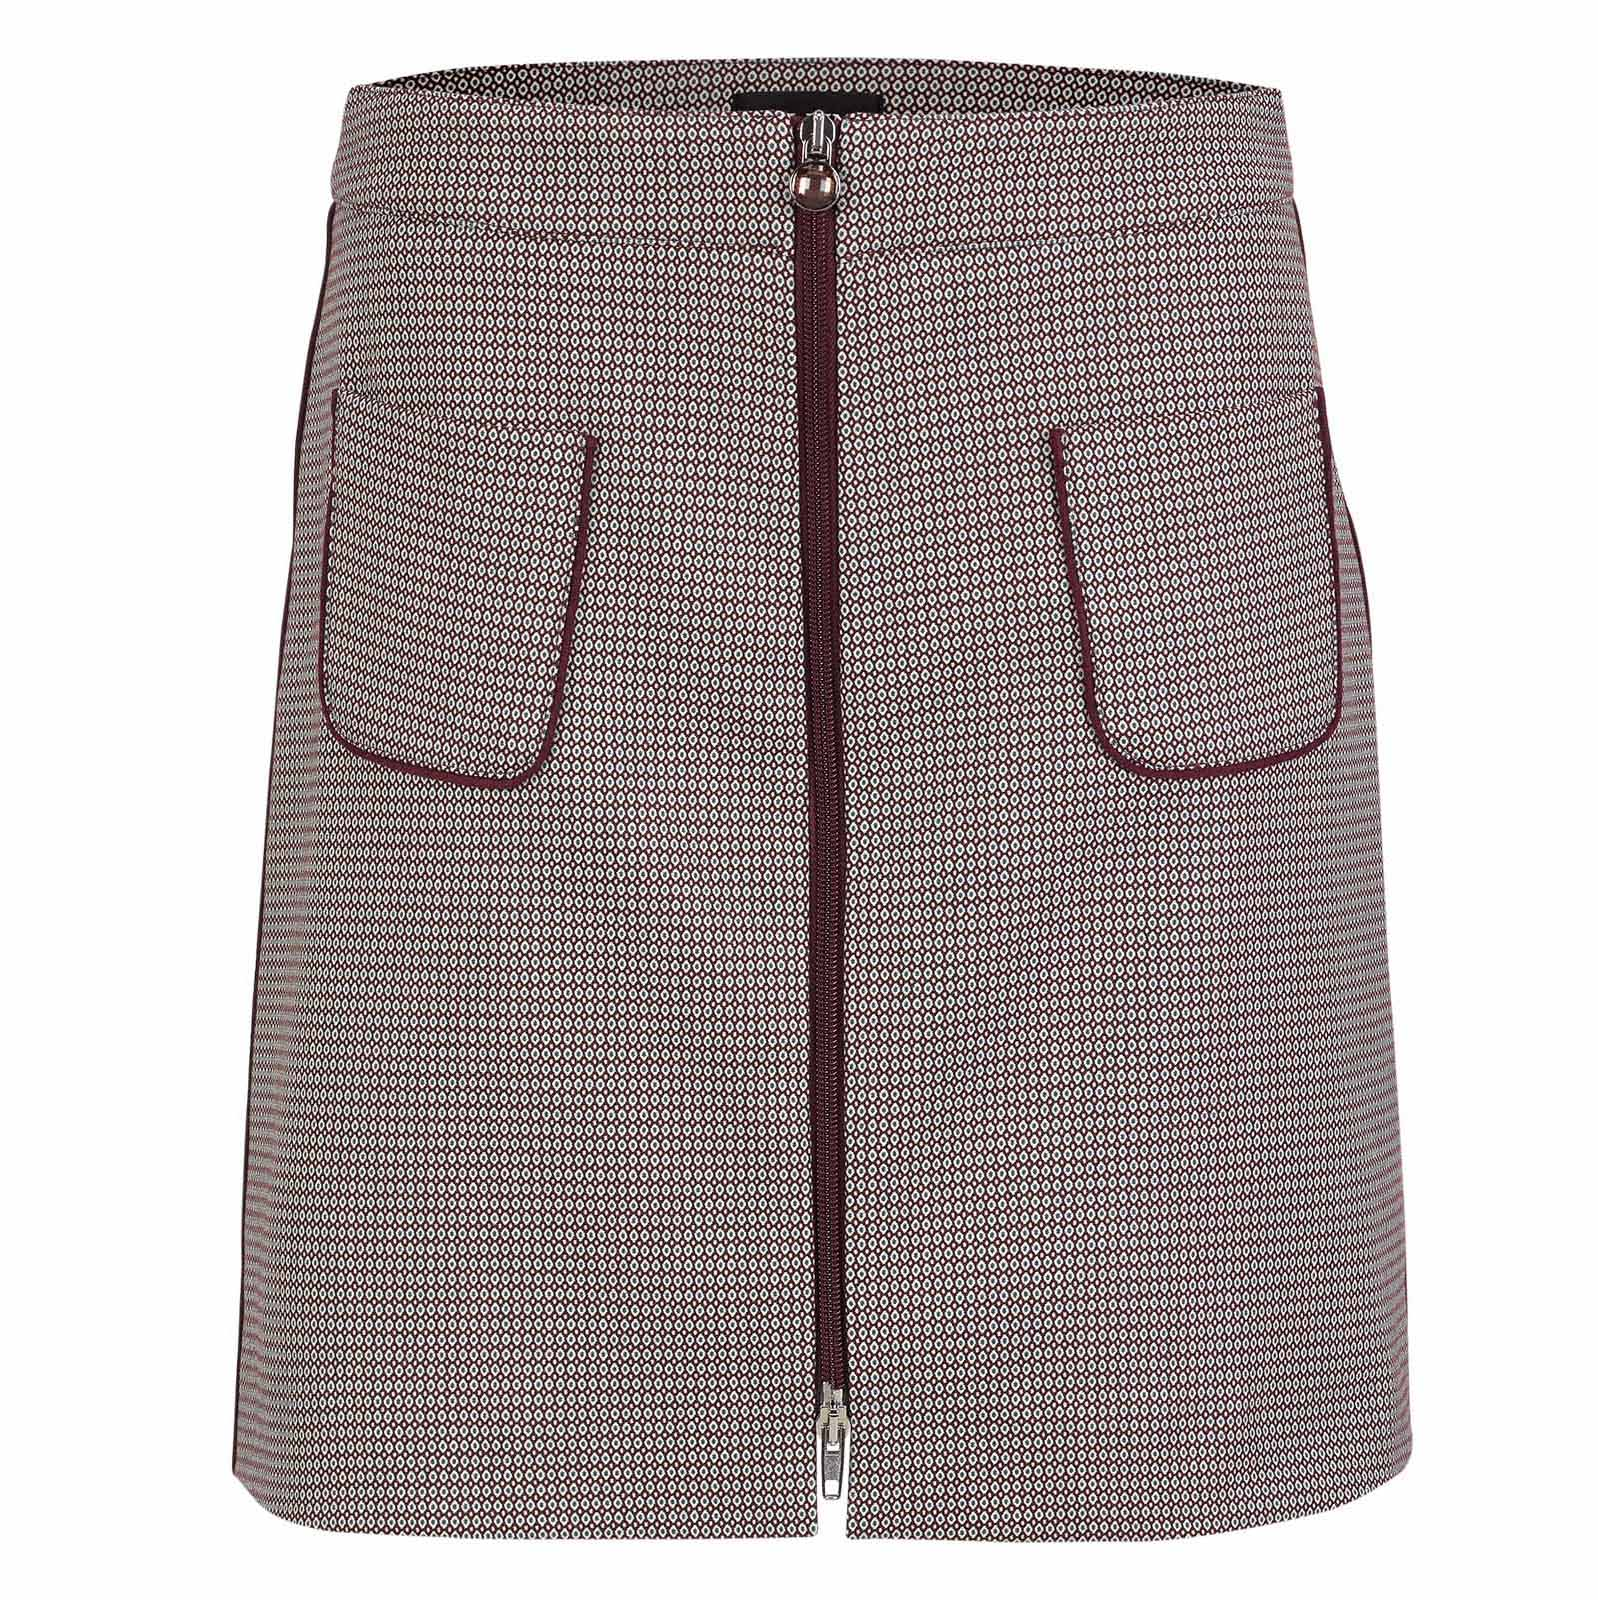 Elegant jacquard ladies golf skirt with fashionable pattern in medium length